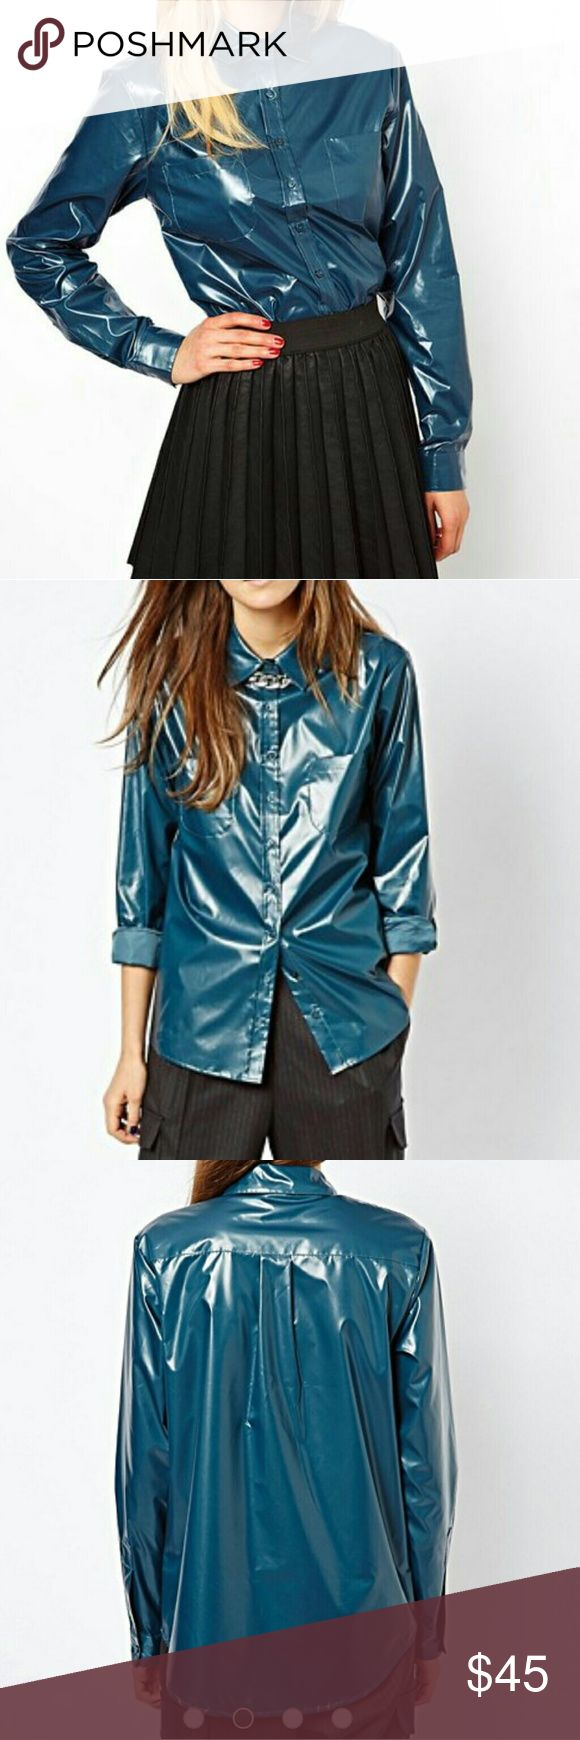 ASOS Blue Wet Look Button Down Shirt Wet Look Shirt Wrinkles can be taken out with light steam  Purchase at listed price to receive a FREE gift! 15% off bundle of 3+ items Any questions? Feel free to ask. Happy Poshing! ASOS Tops Button Down Shirts